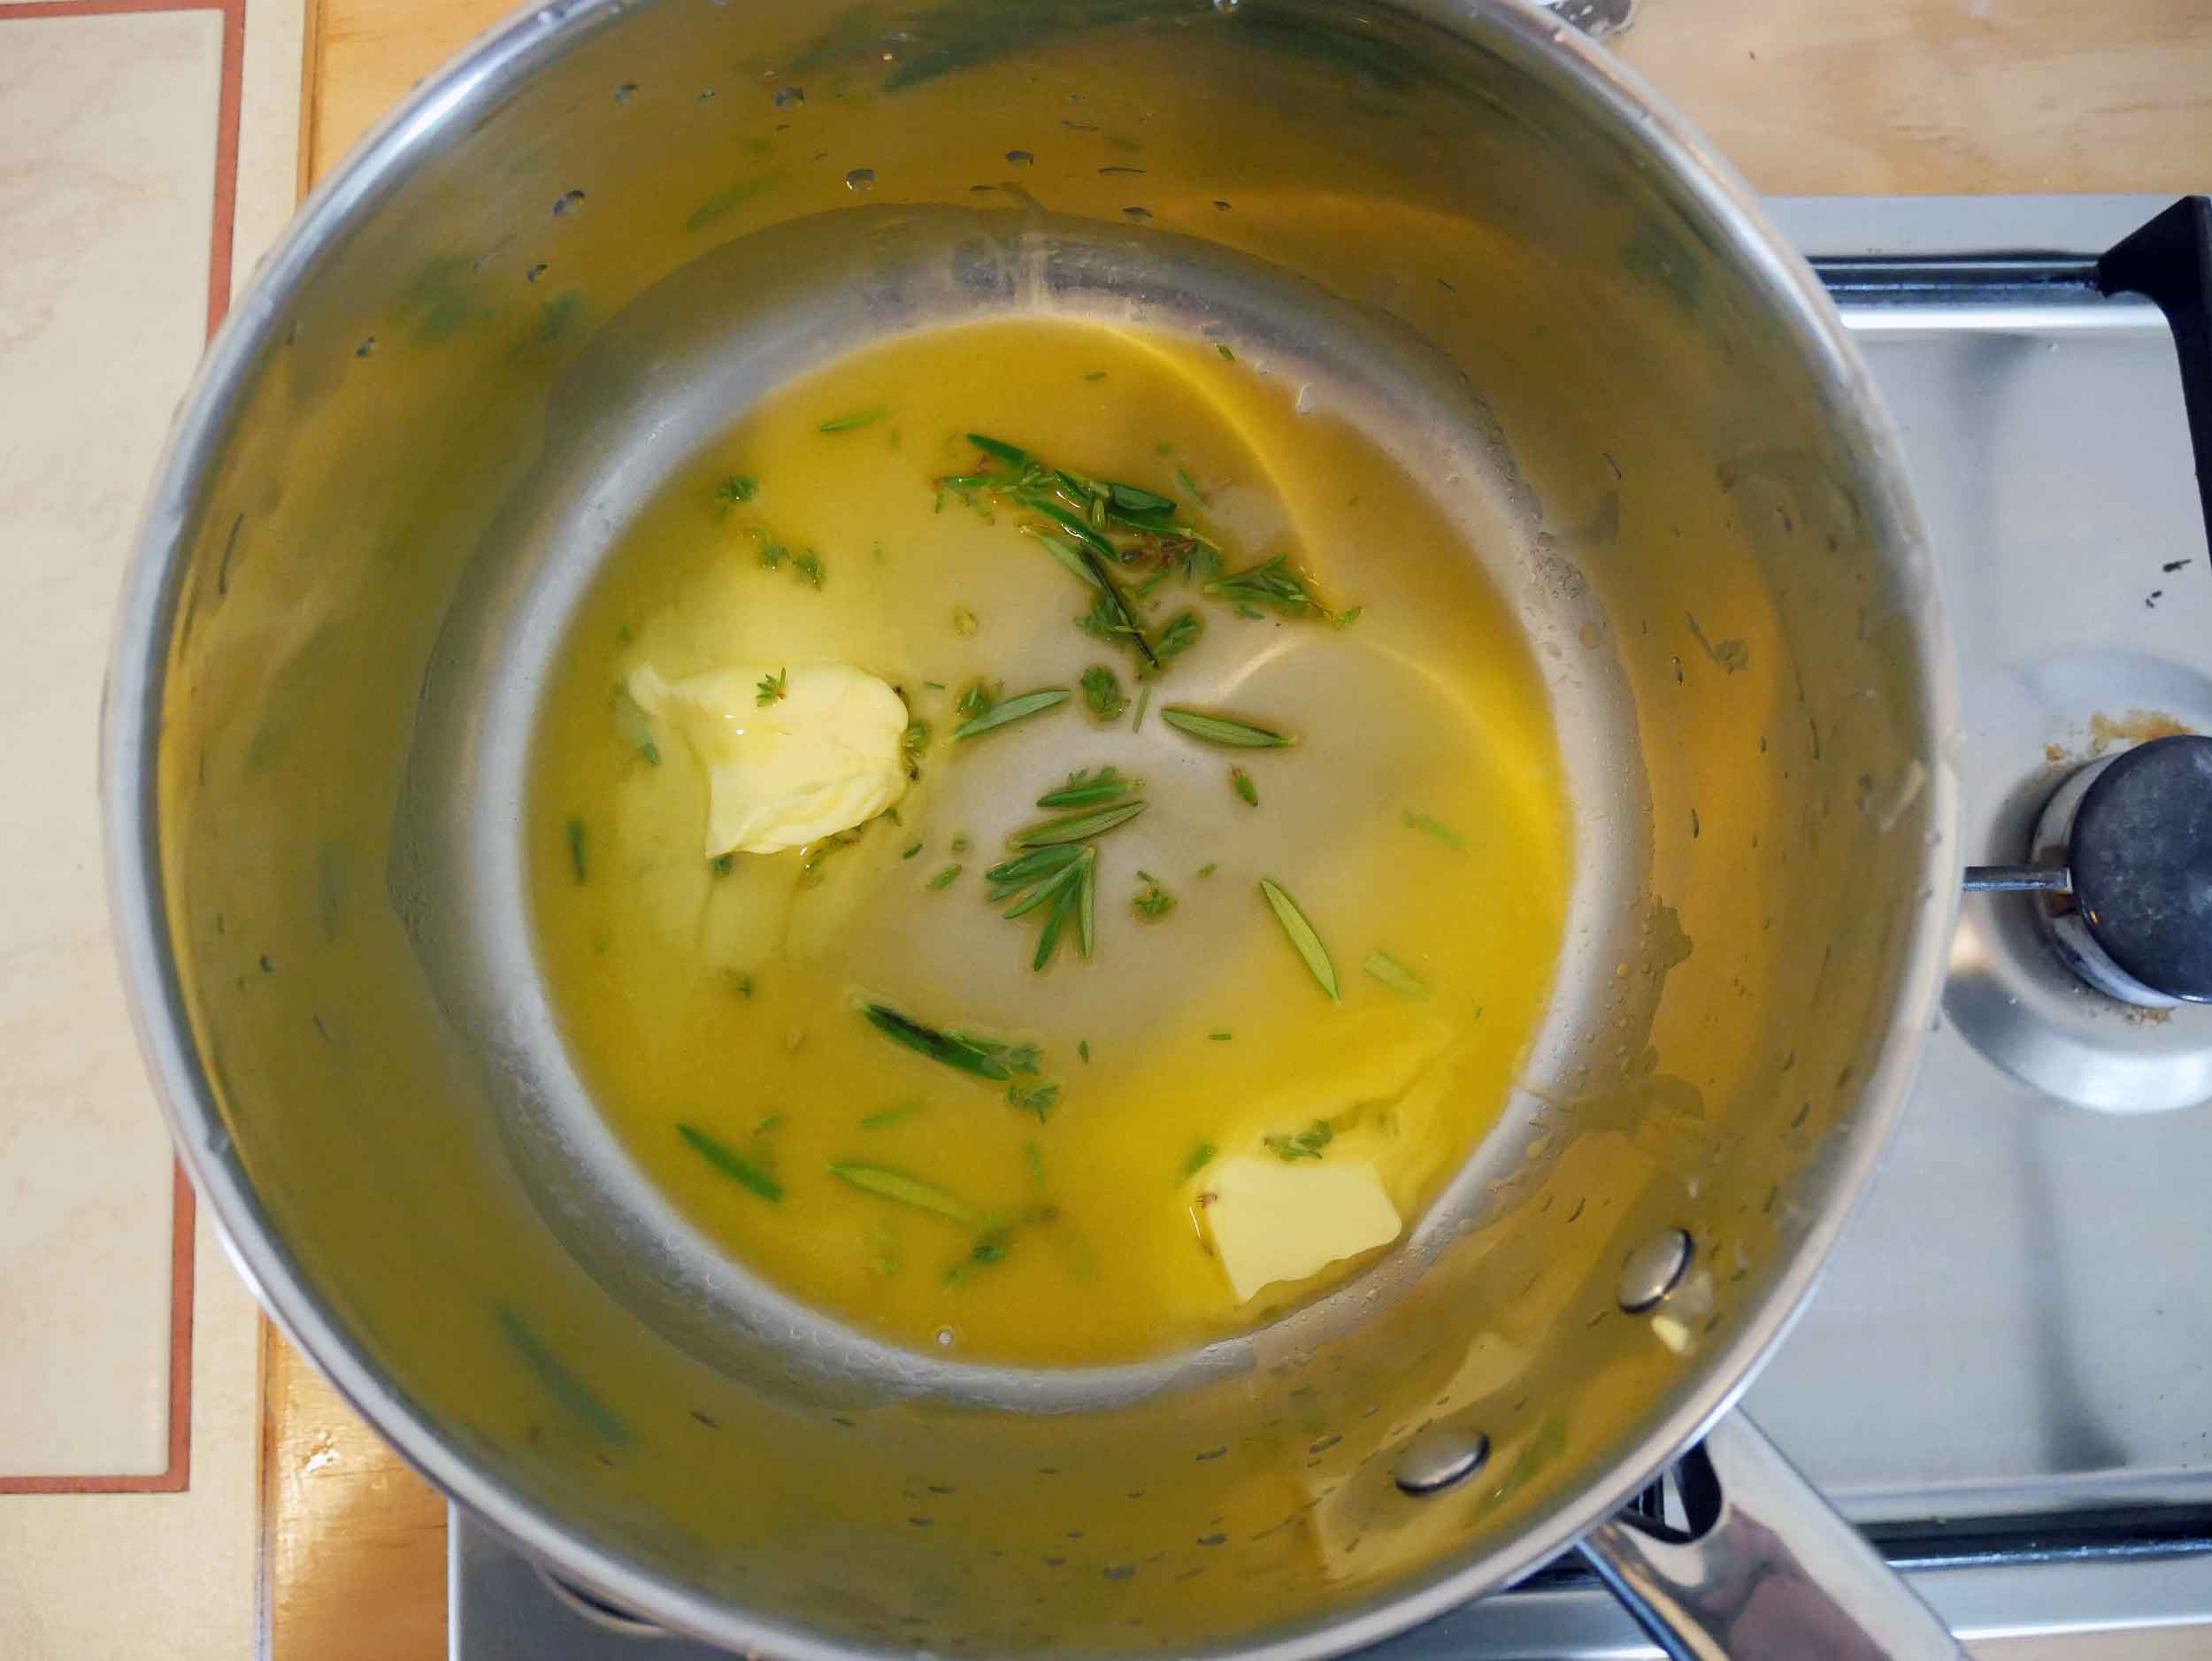 Melt butter then add fresh herbs for flavor (2-3mins).